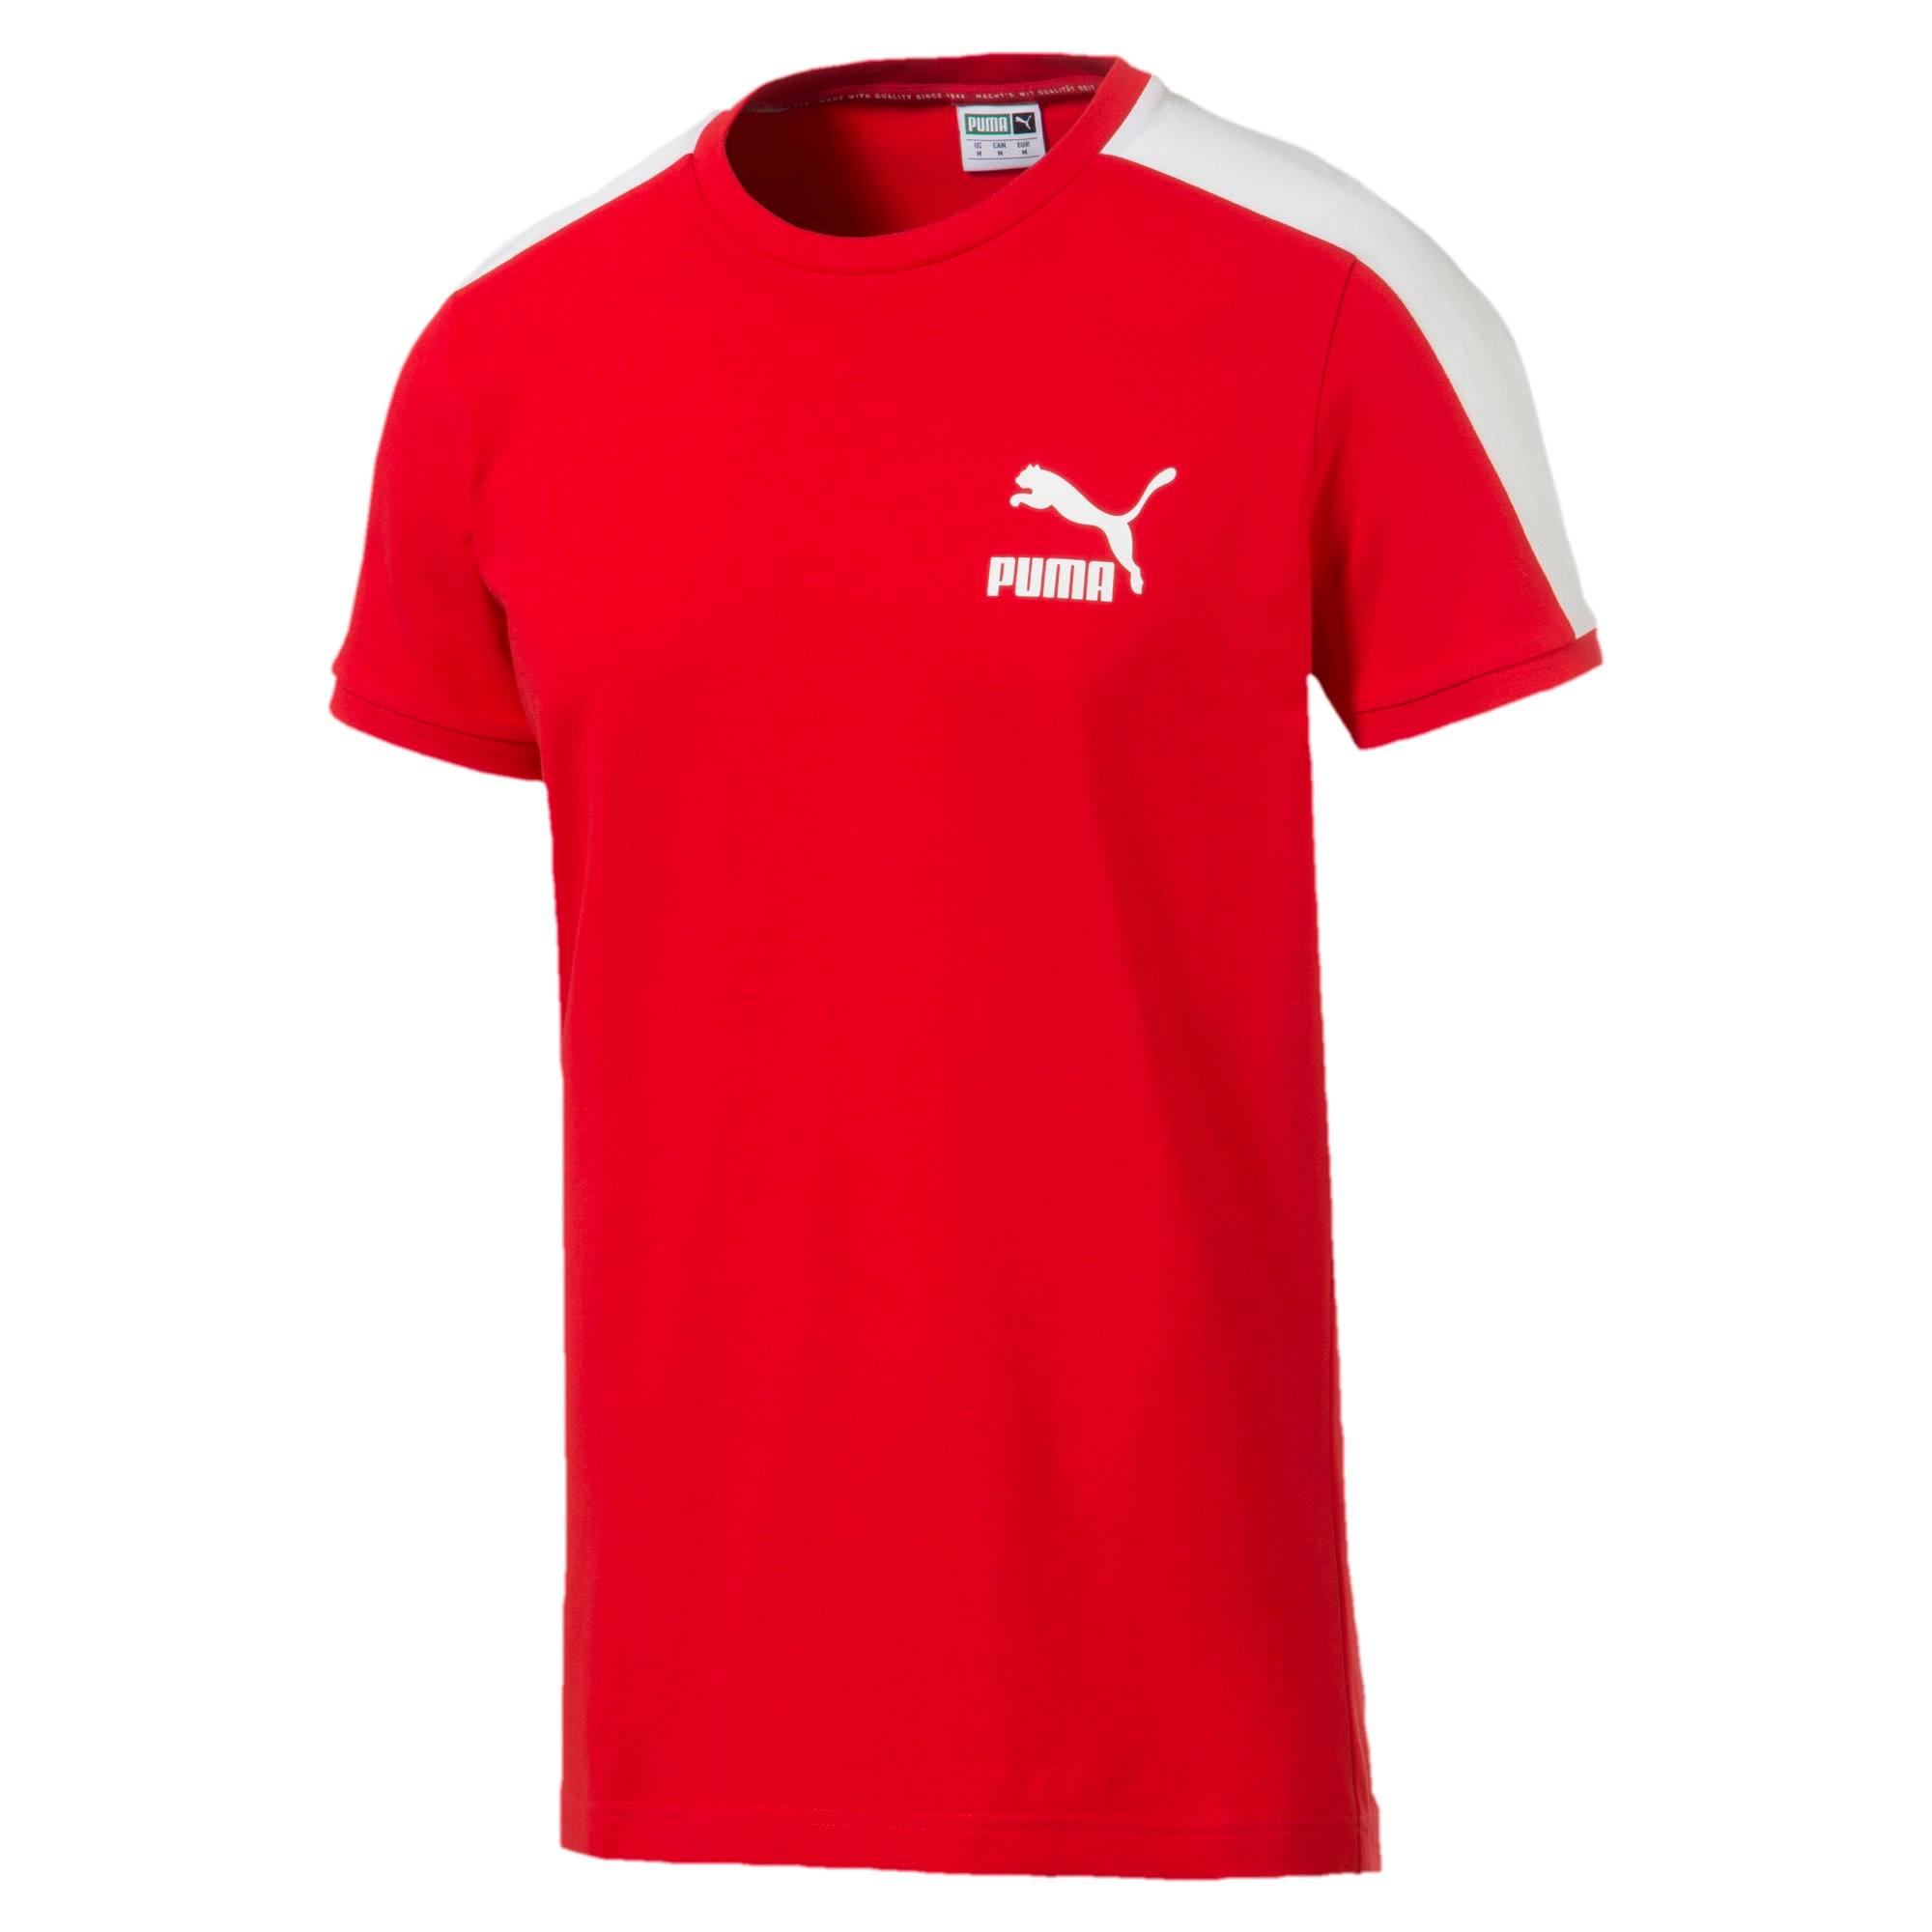 Thumbnail 4 of Iconic T7 Men's Tee, High Risk Red, medium